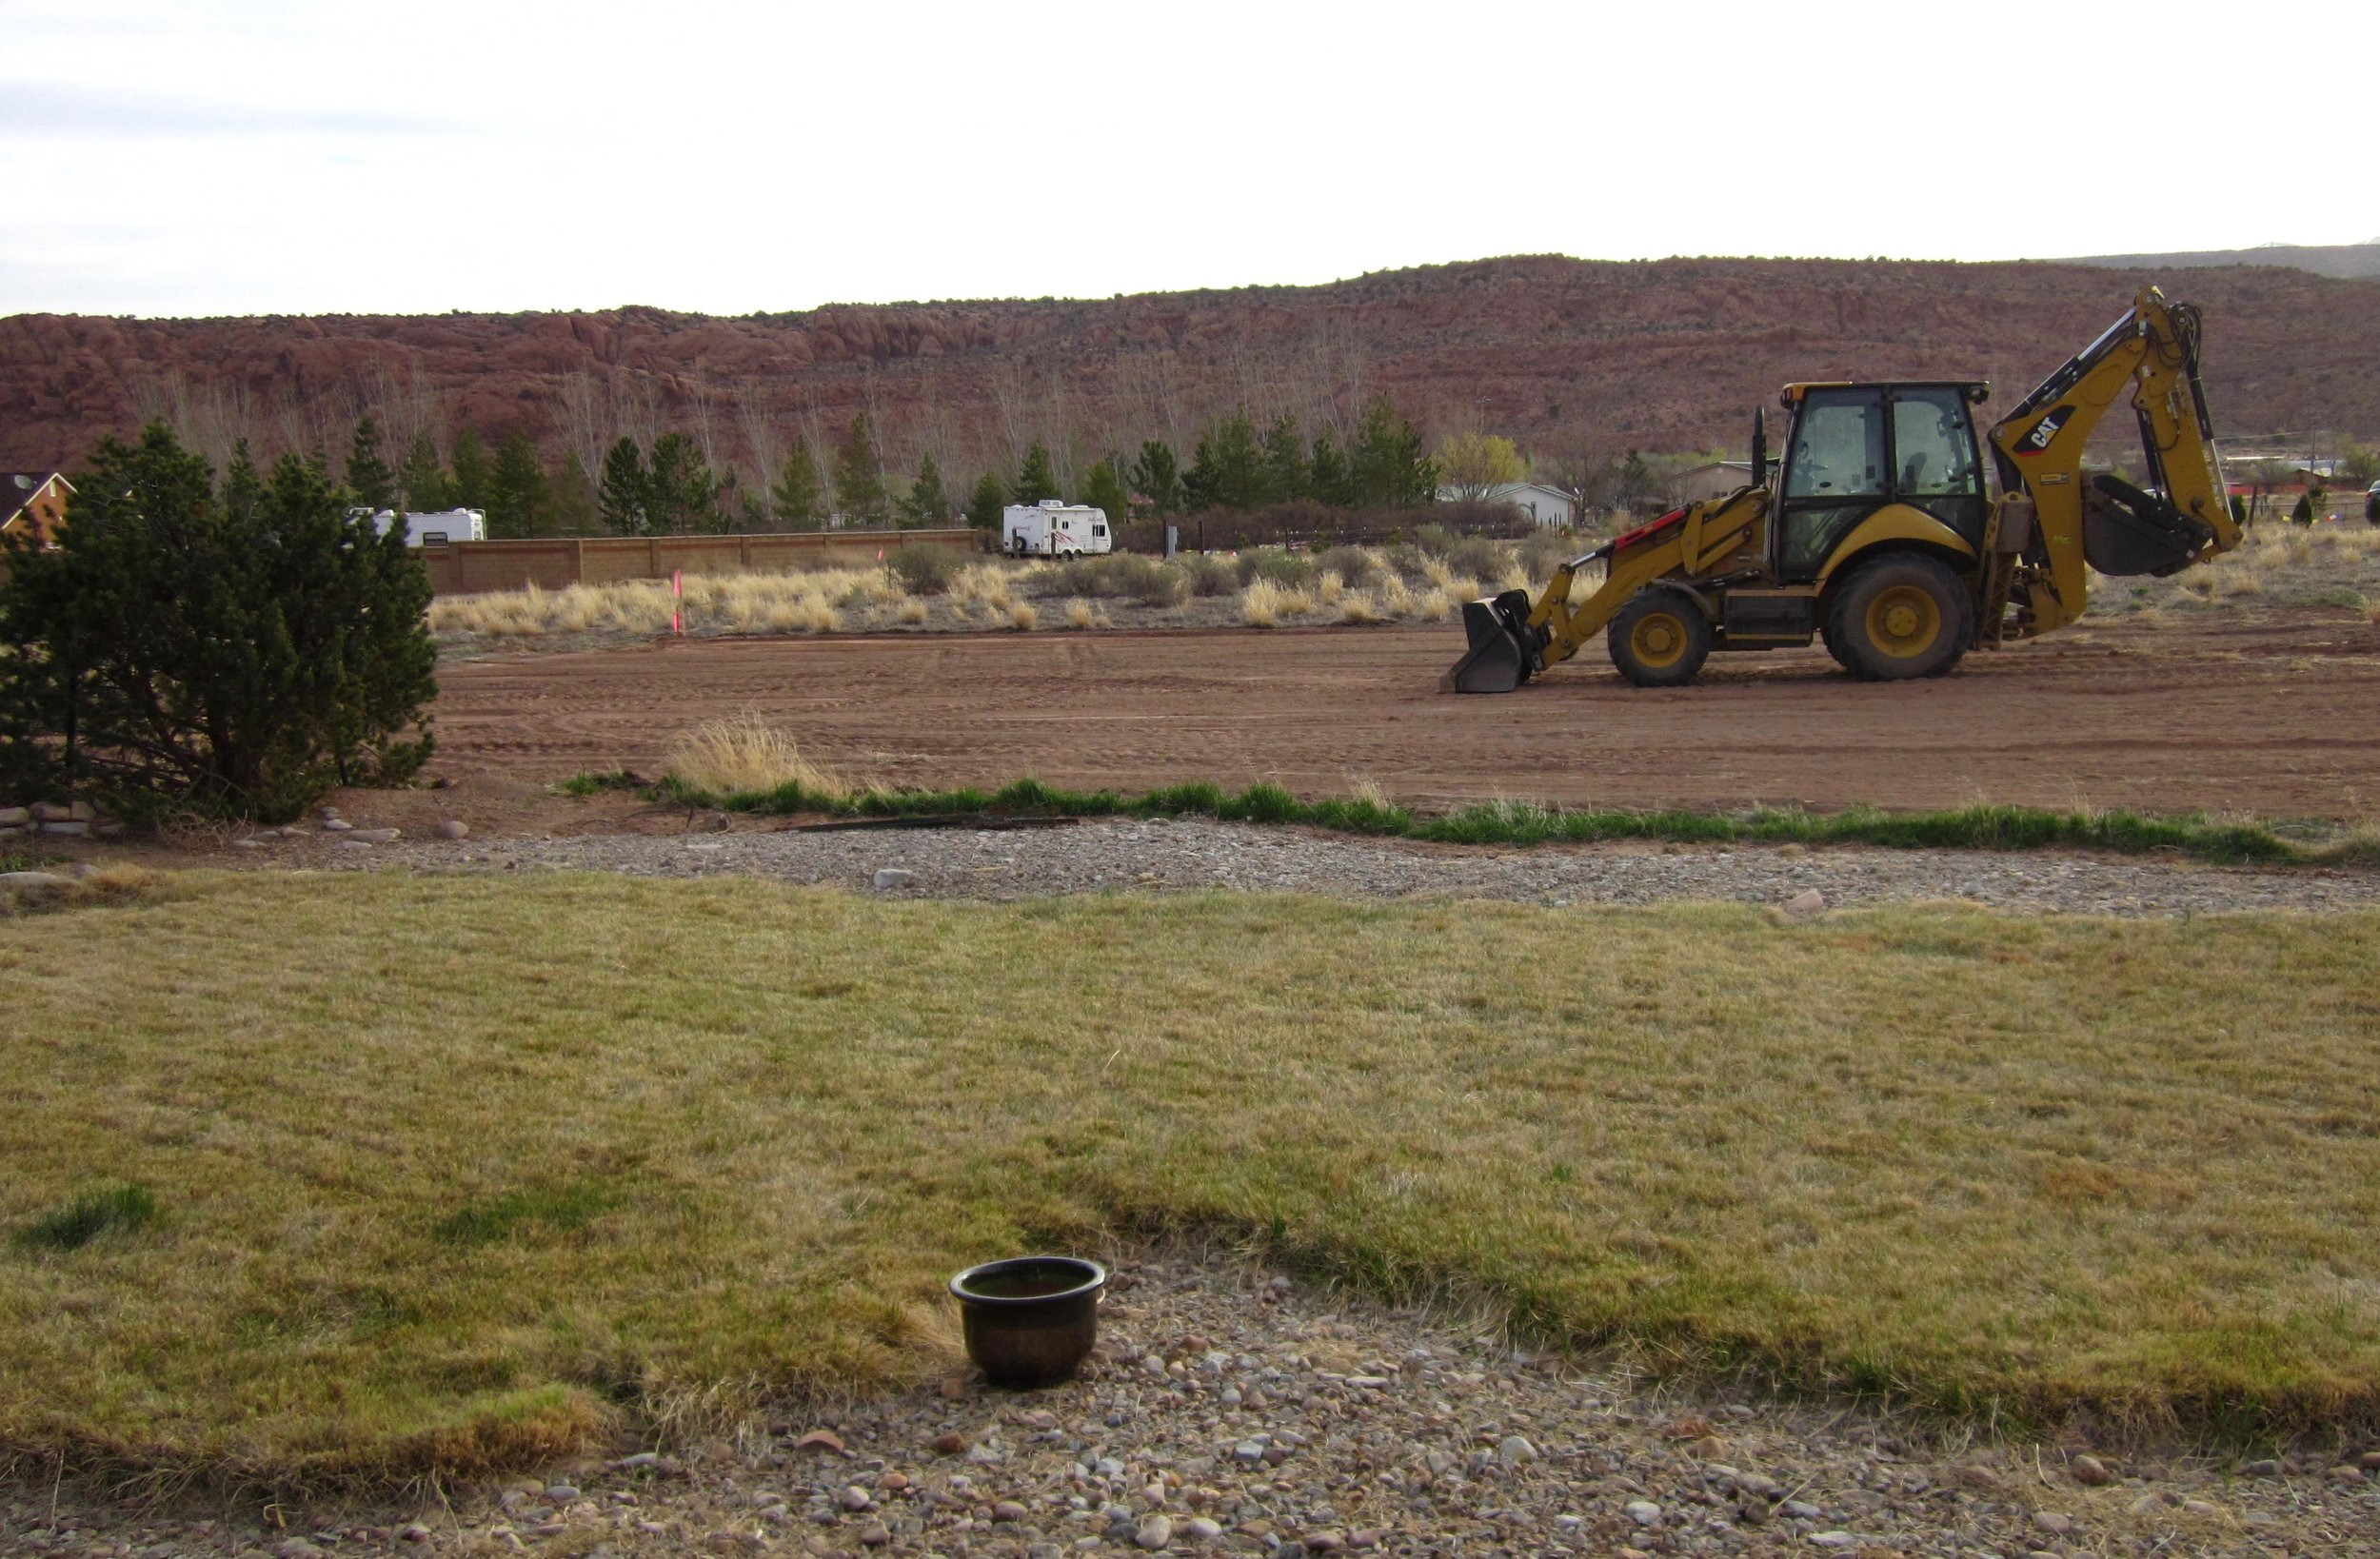 Clearing the ground to make room for my my mixed media art studio